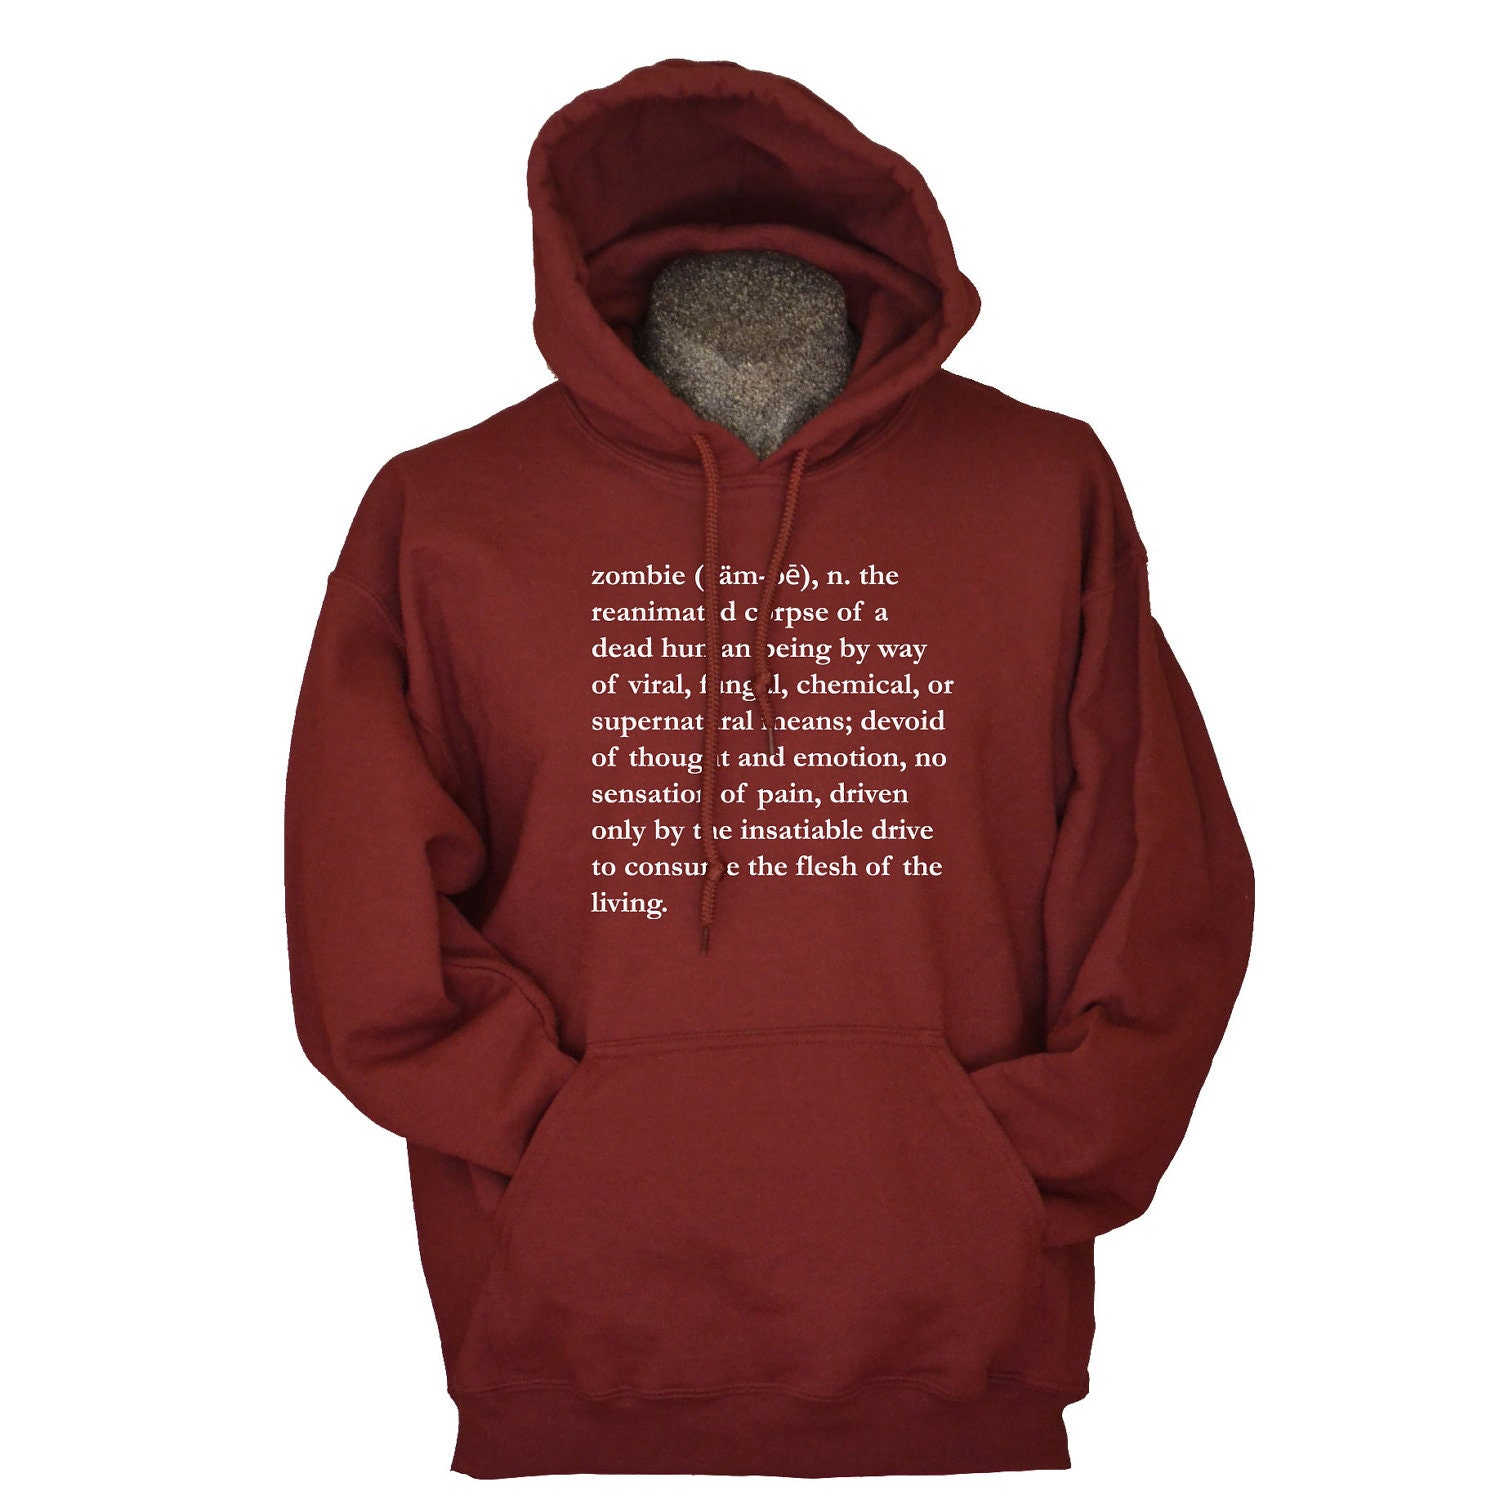 Hoodies definition